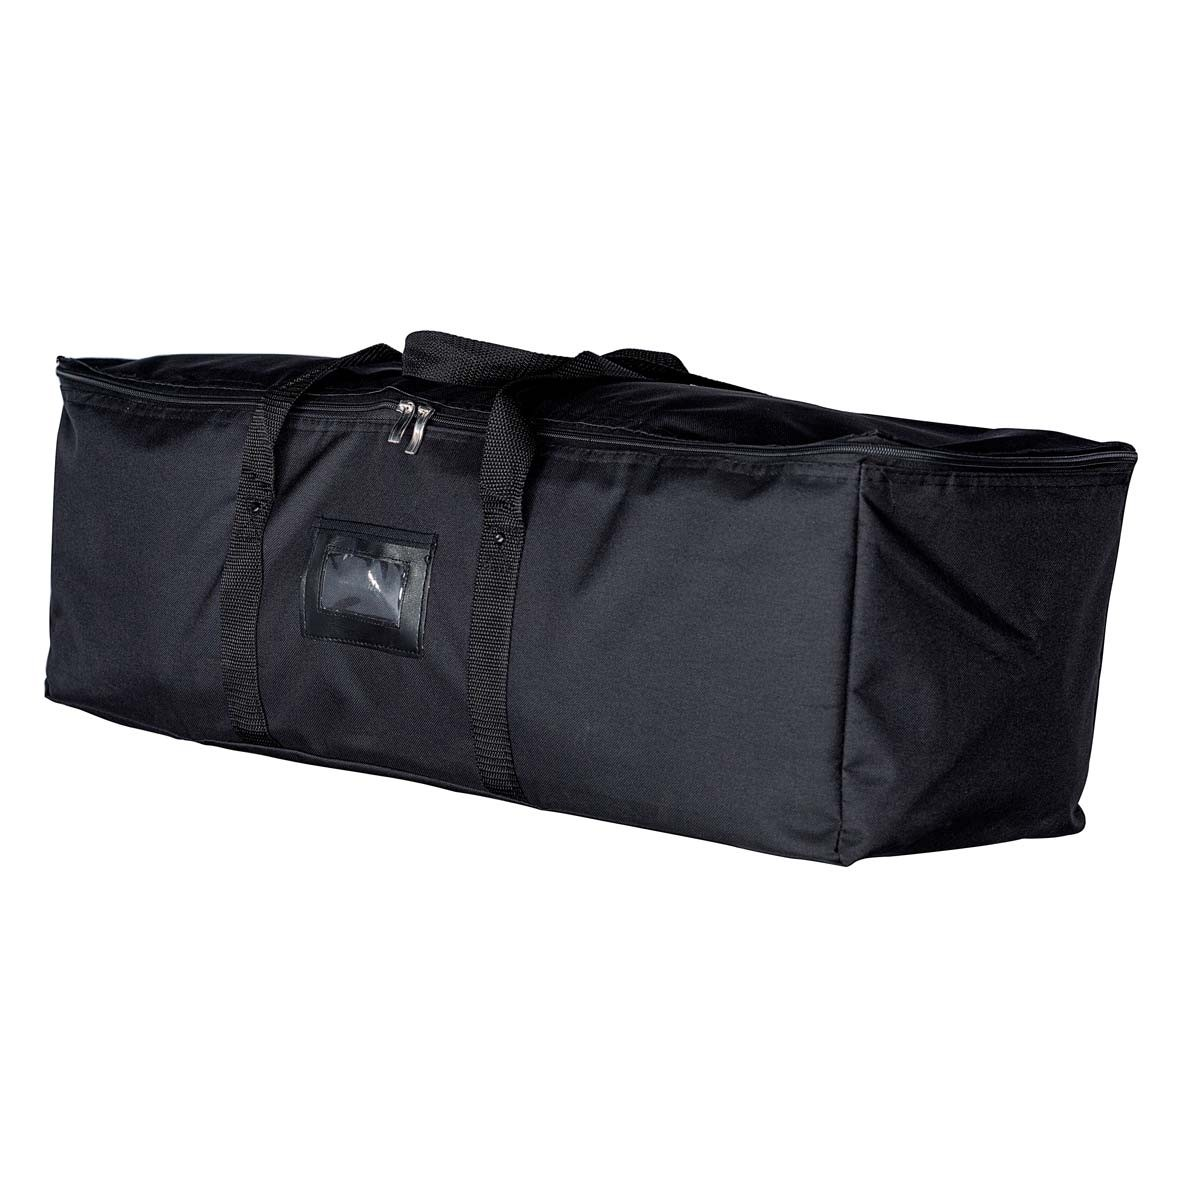 Carrying Bag for 10 Foot Tension Fabric Displays